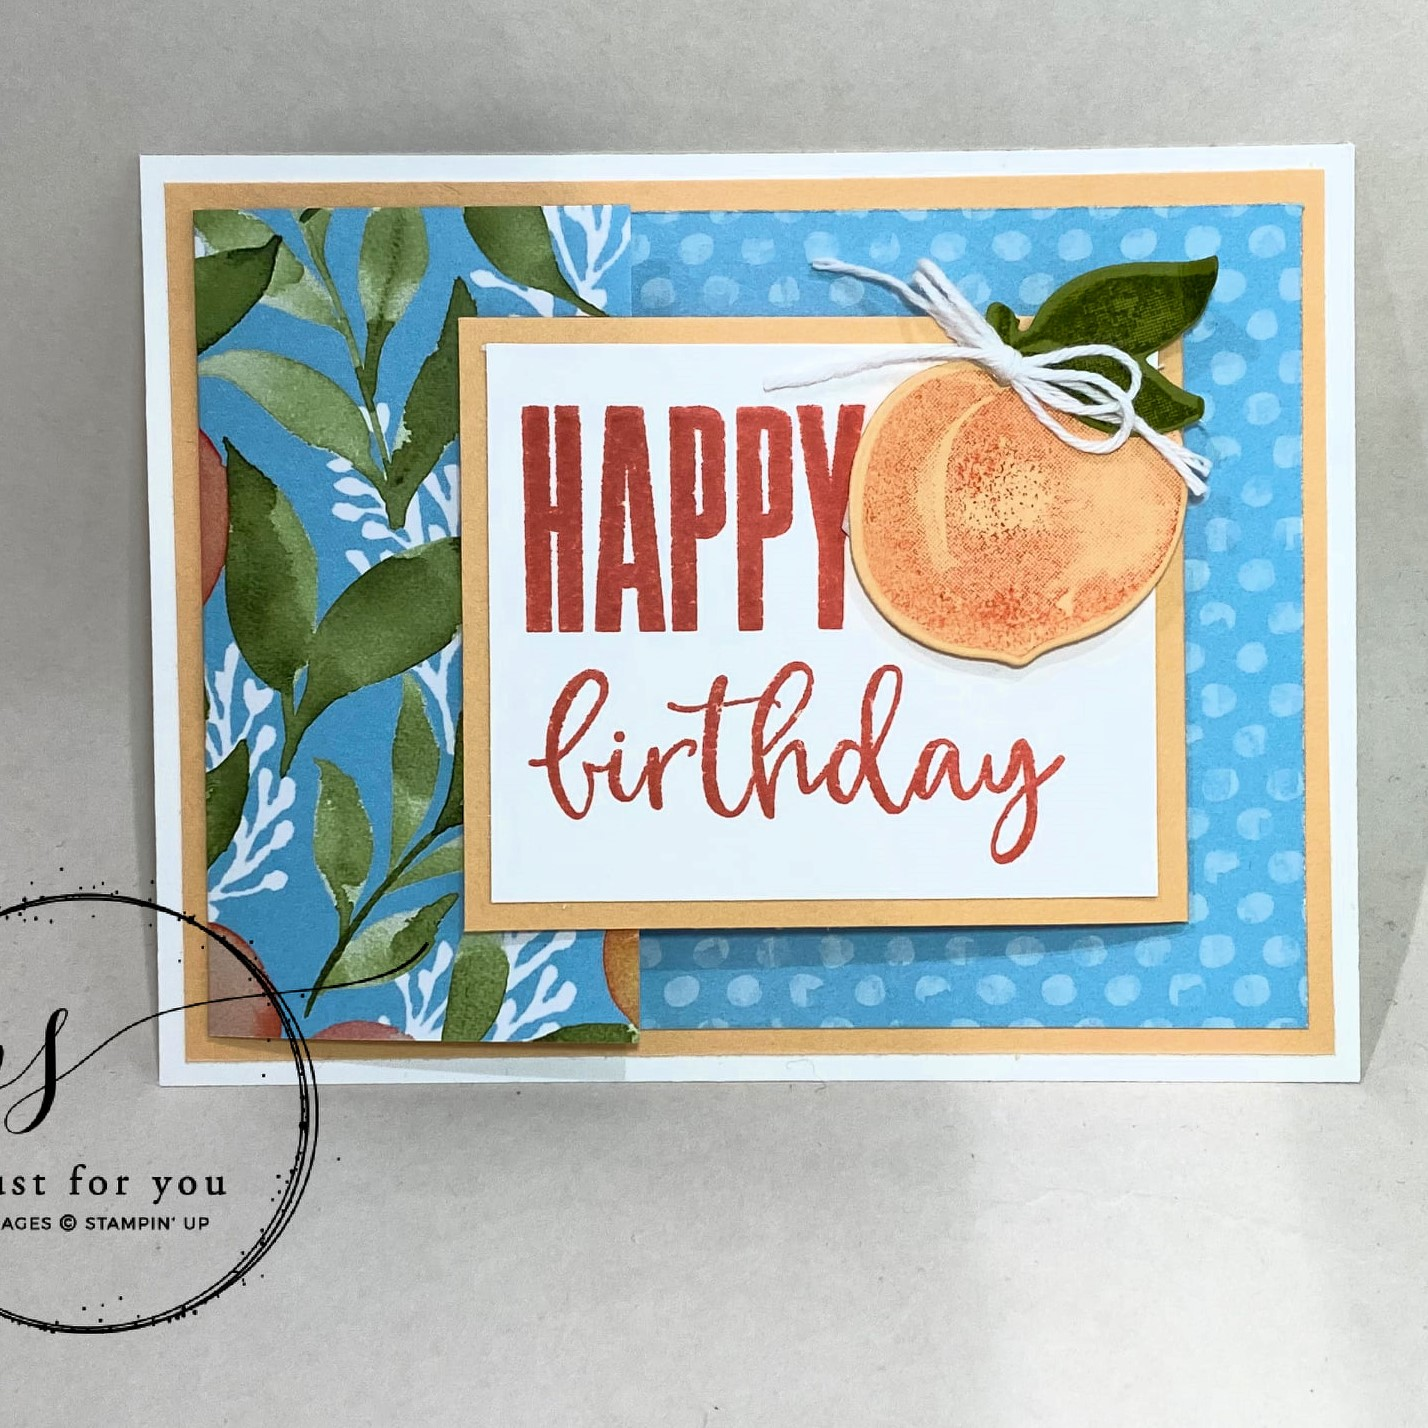 birthdaycard using Stampin' Up sweet as a peach stamp set